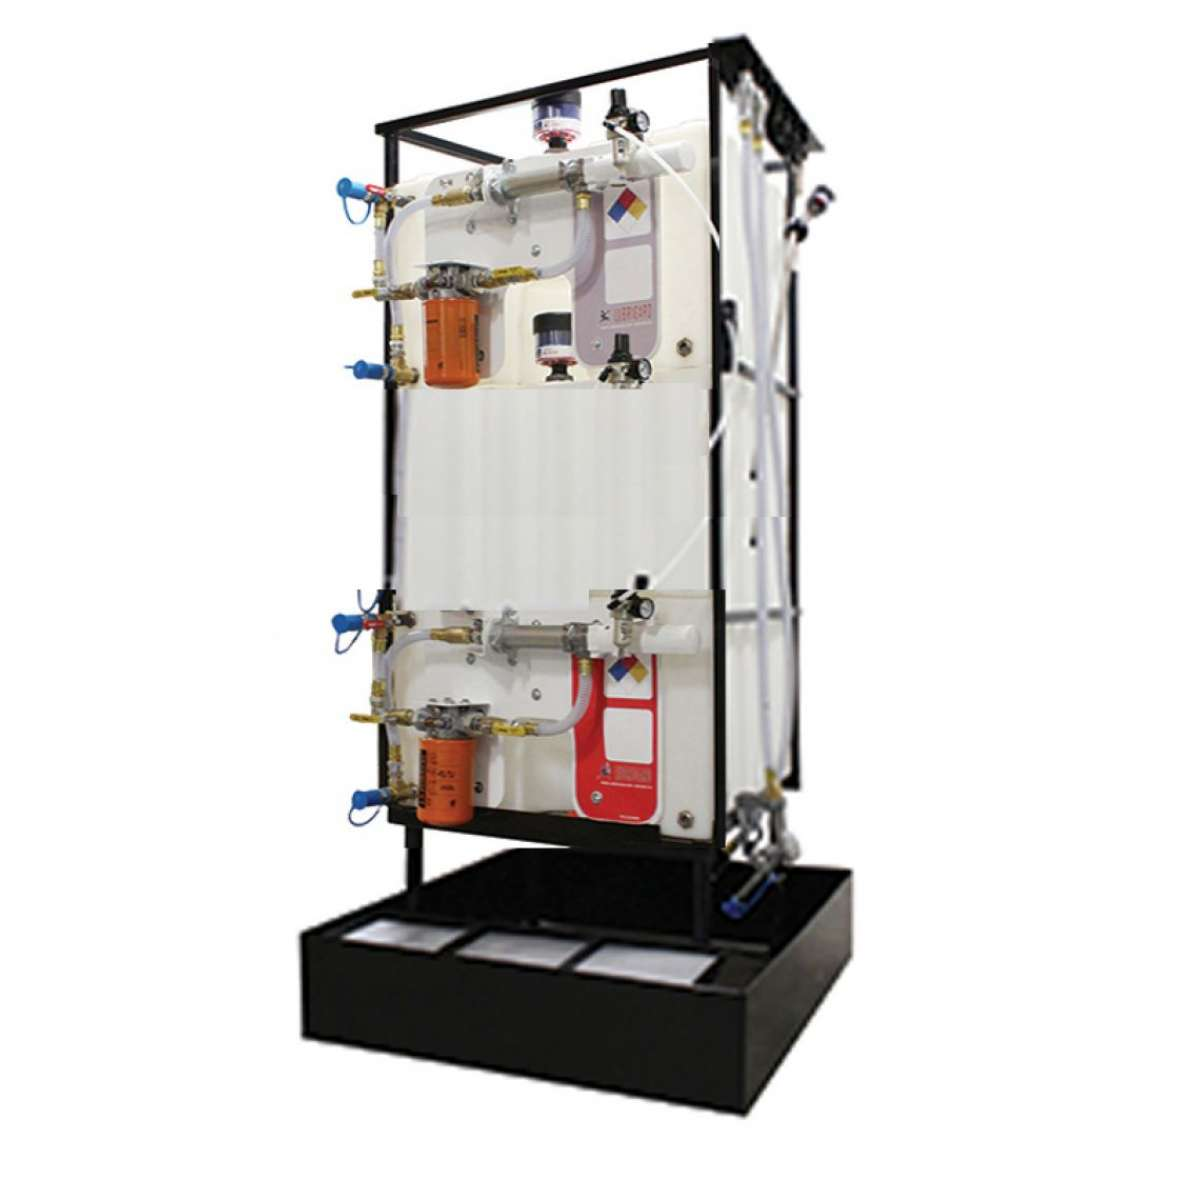 2 X 145 Gallon (550 L) Poly Container System with Hy hose kit and upgraded Dispensing Handle